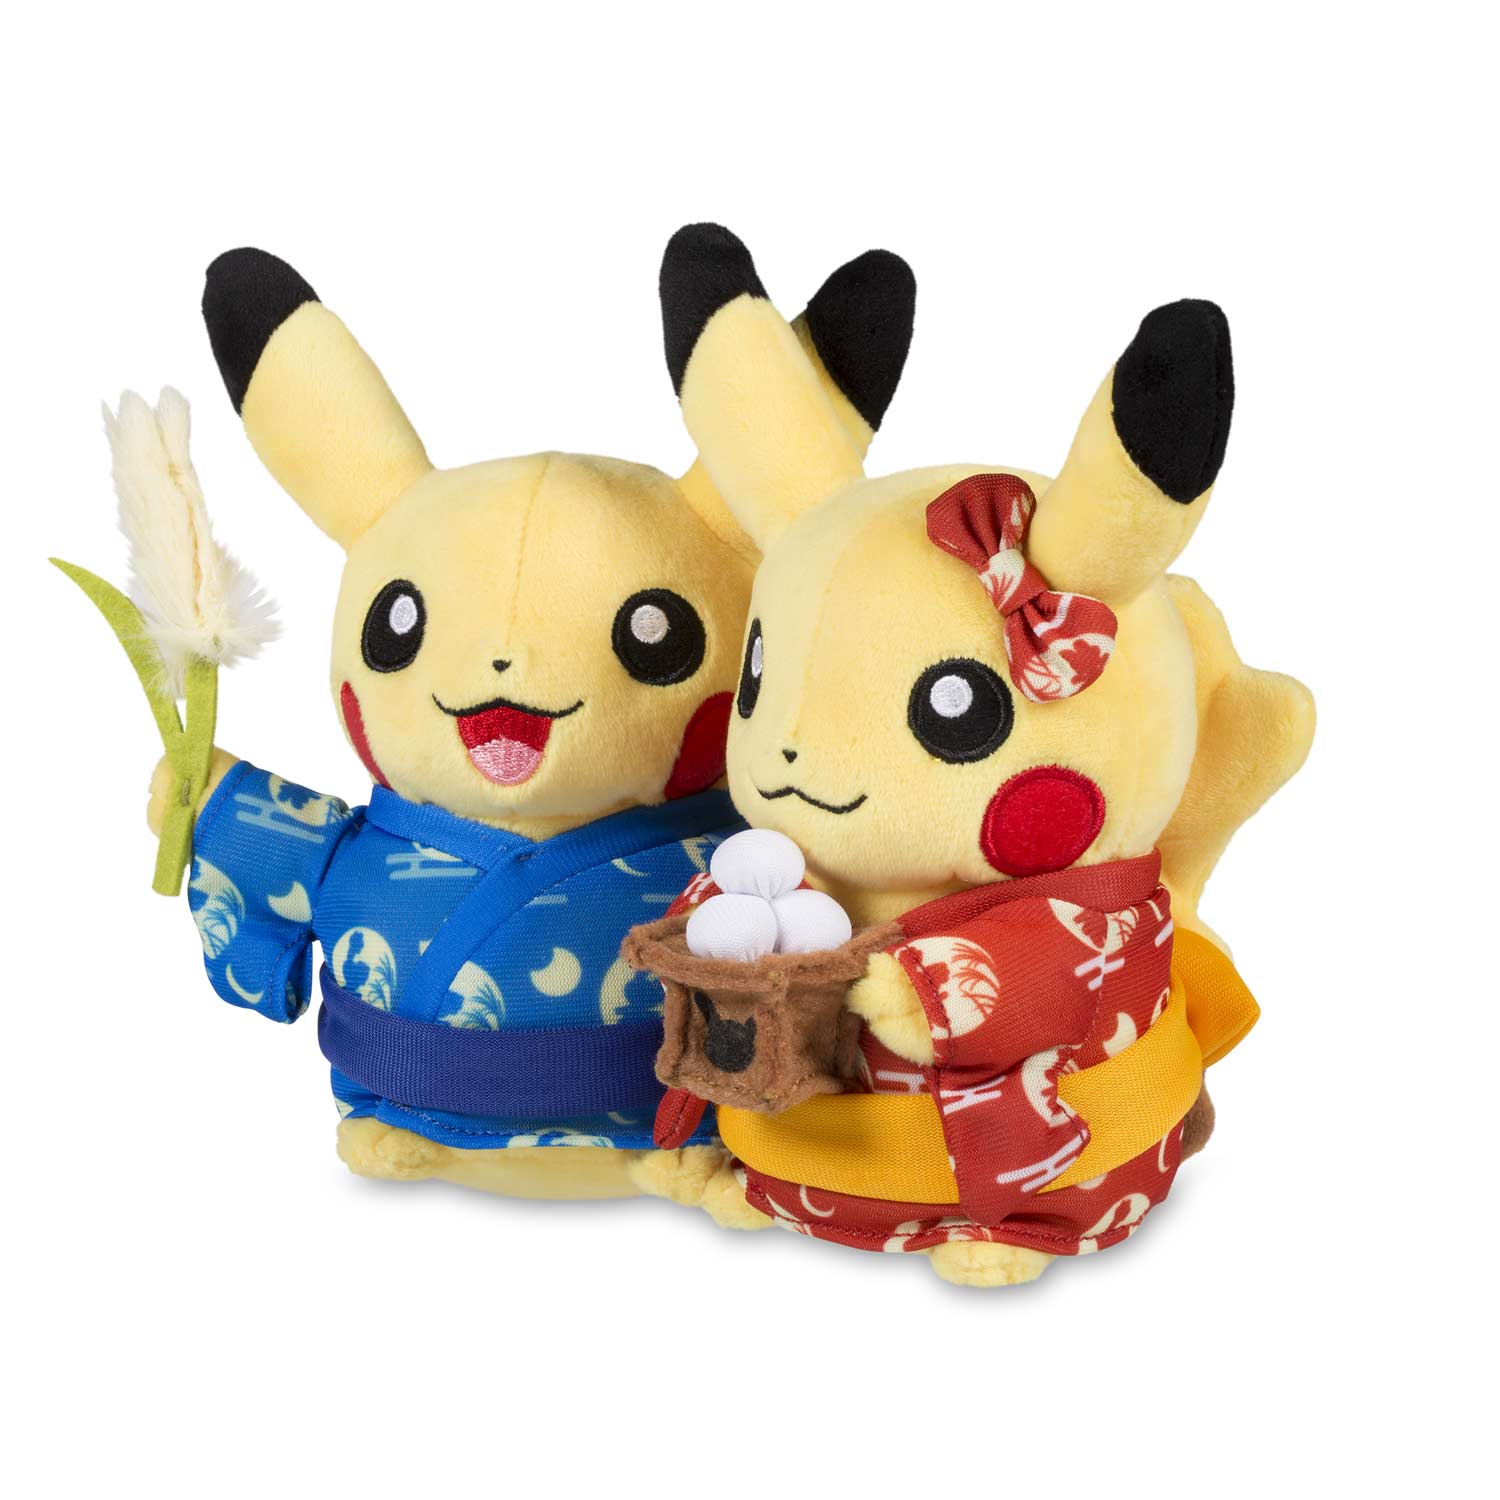 0e188799 ... Image for Paired Pikachu Celebrations: Moon Viewing Pikachu Plush - 8  In. from Pokemon ...